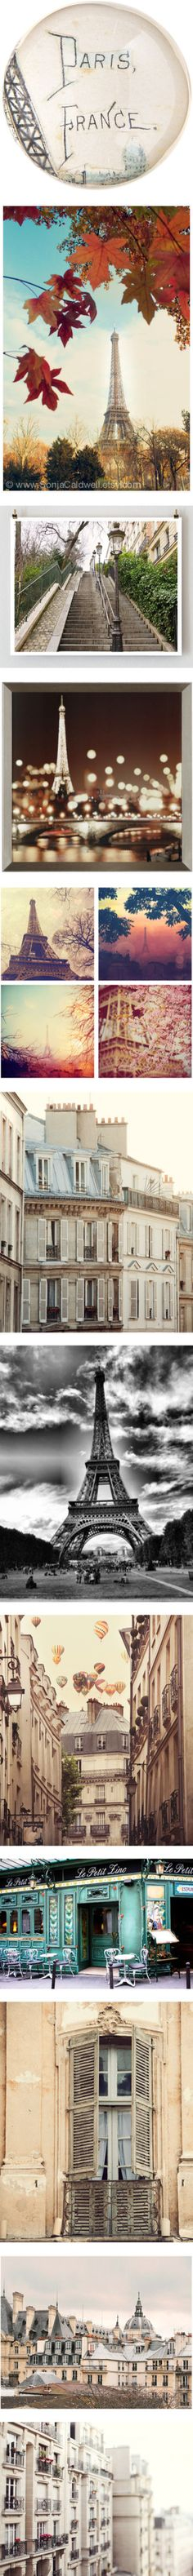 """""""I dream of Paris...."""" by emc1397 ❤ liked on Polyvore"""